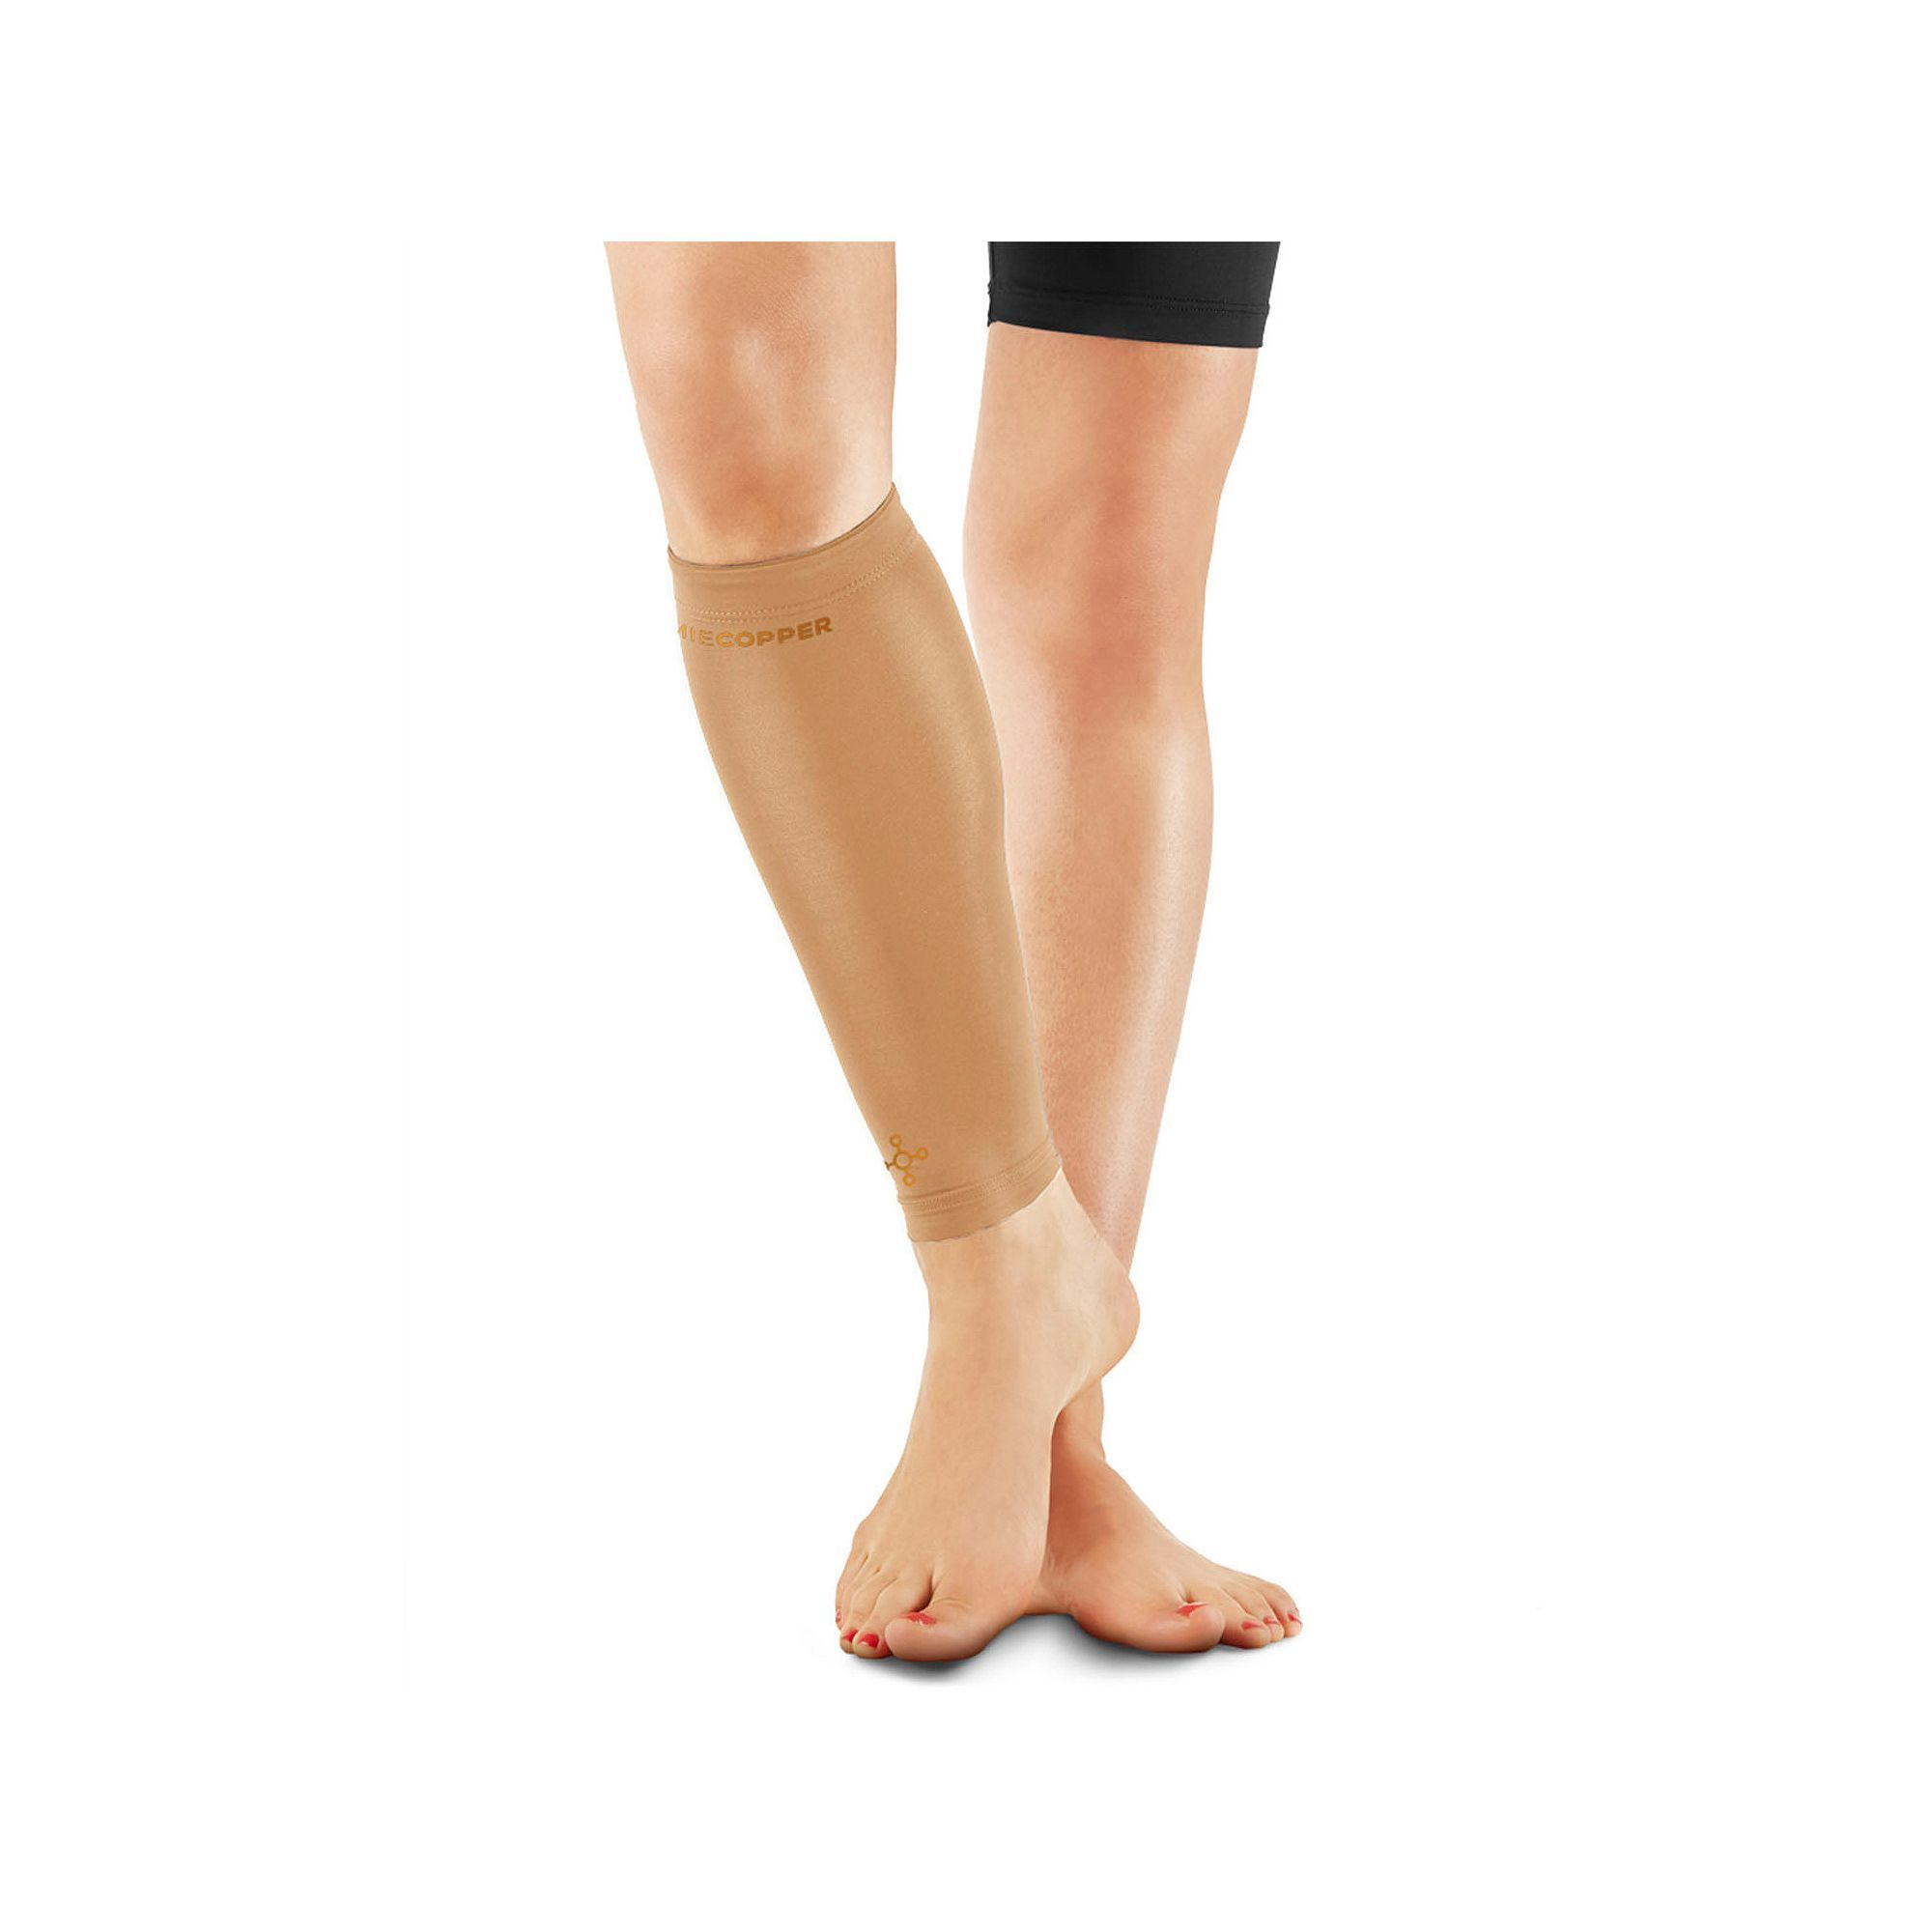 1f6d0108b8 Women's Tommie Copper Recovery Compression Calf Sleeve, Lt Brown ...